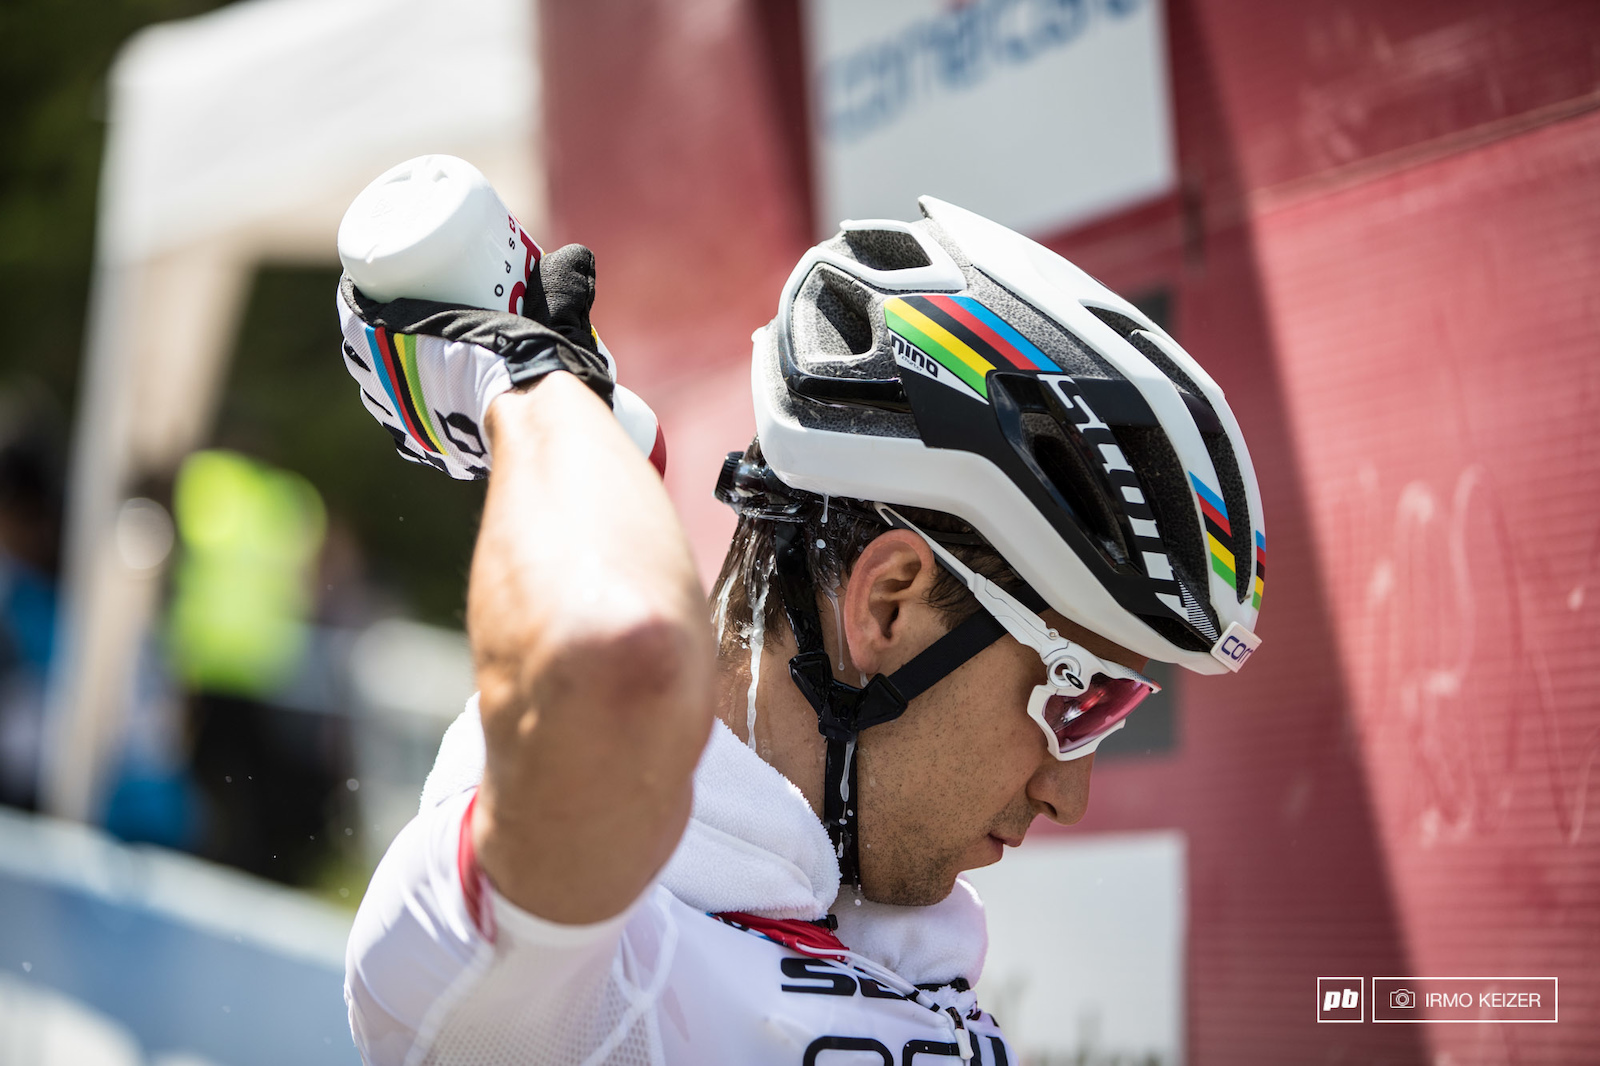 Pre-race cooling for Nino Schurter as temperatures reached tropical levels in Lenzerheide.